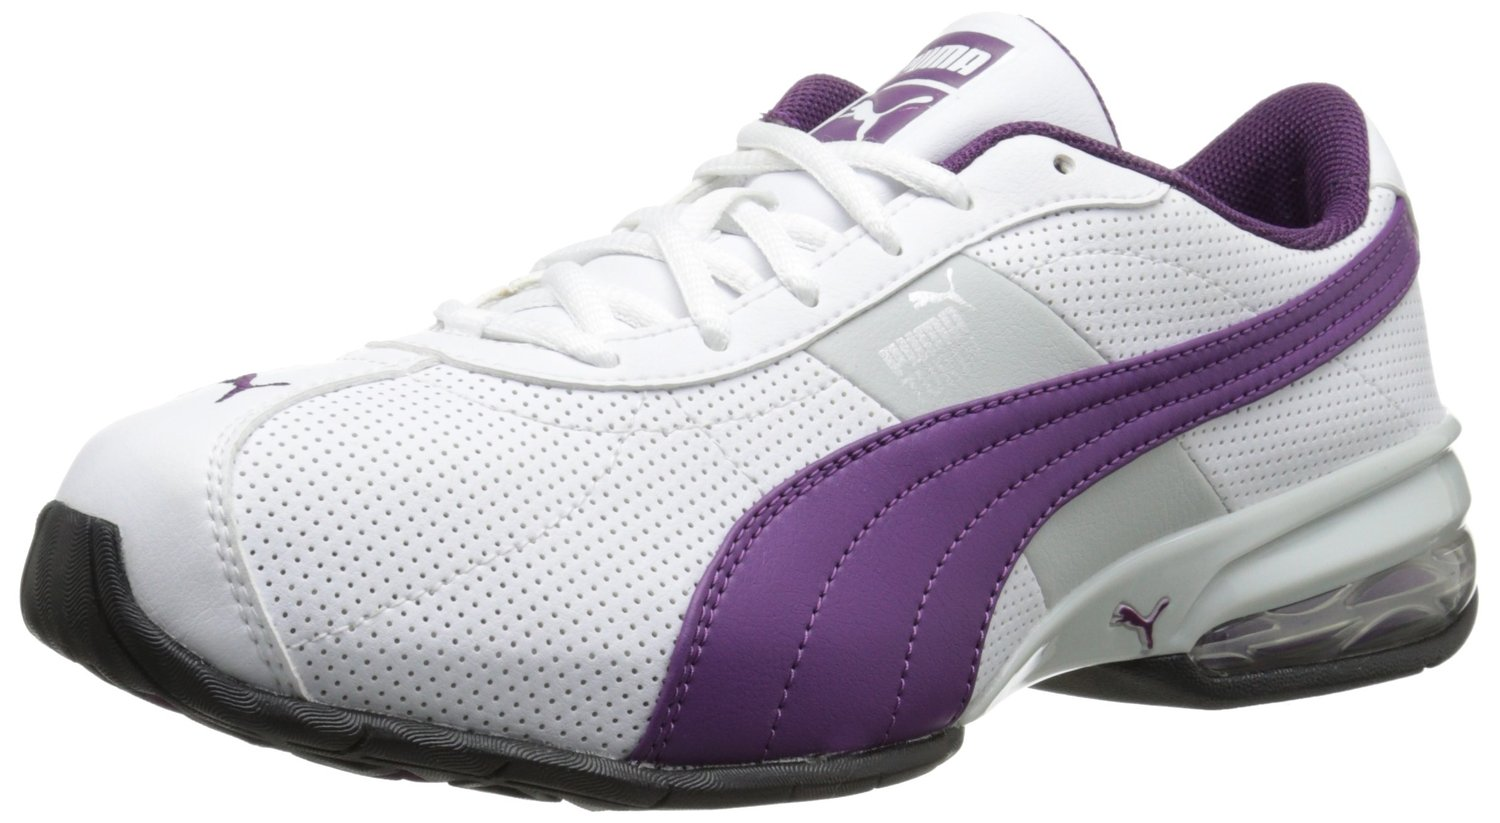 Buy Puma Turin Shoes